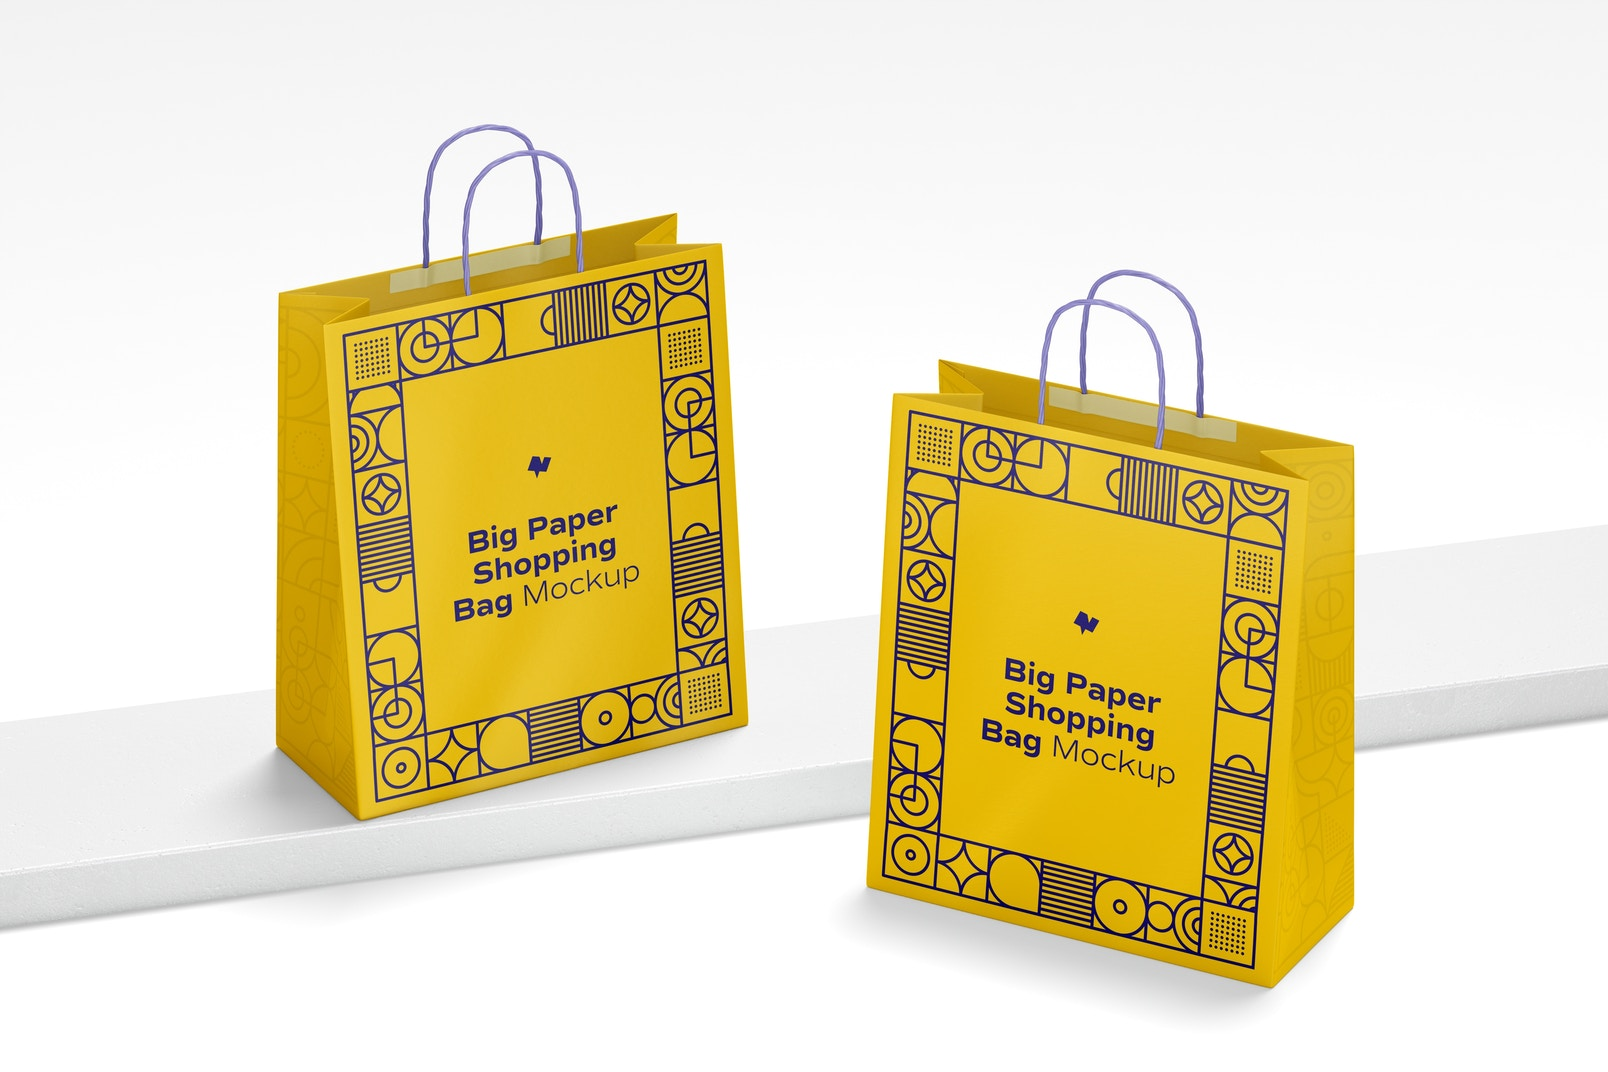 Big Paper Shopping Bags Mockup, Perspective